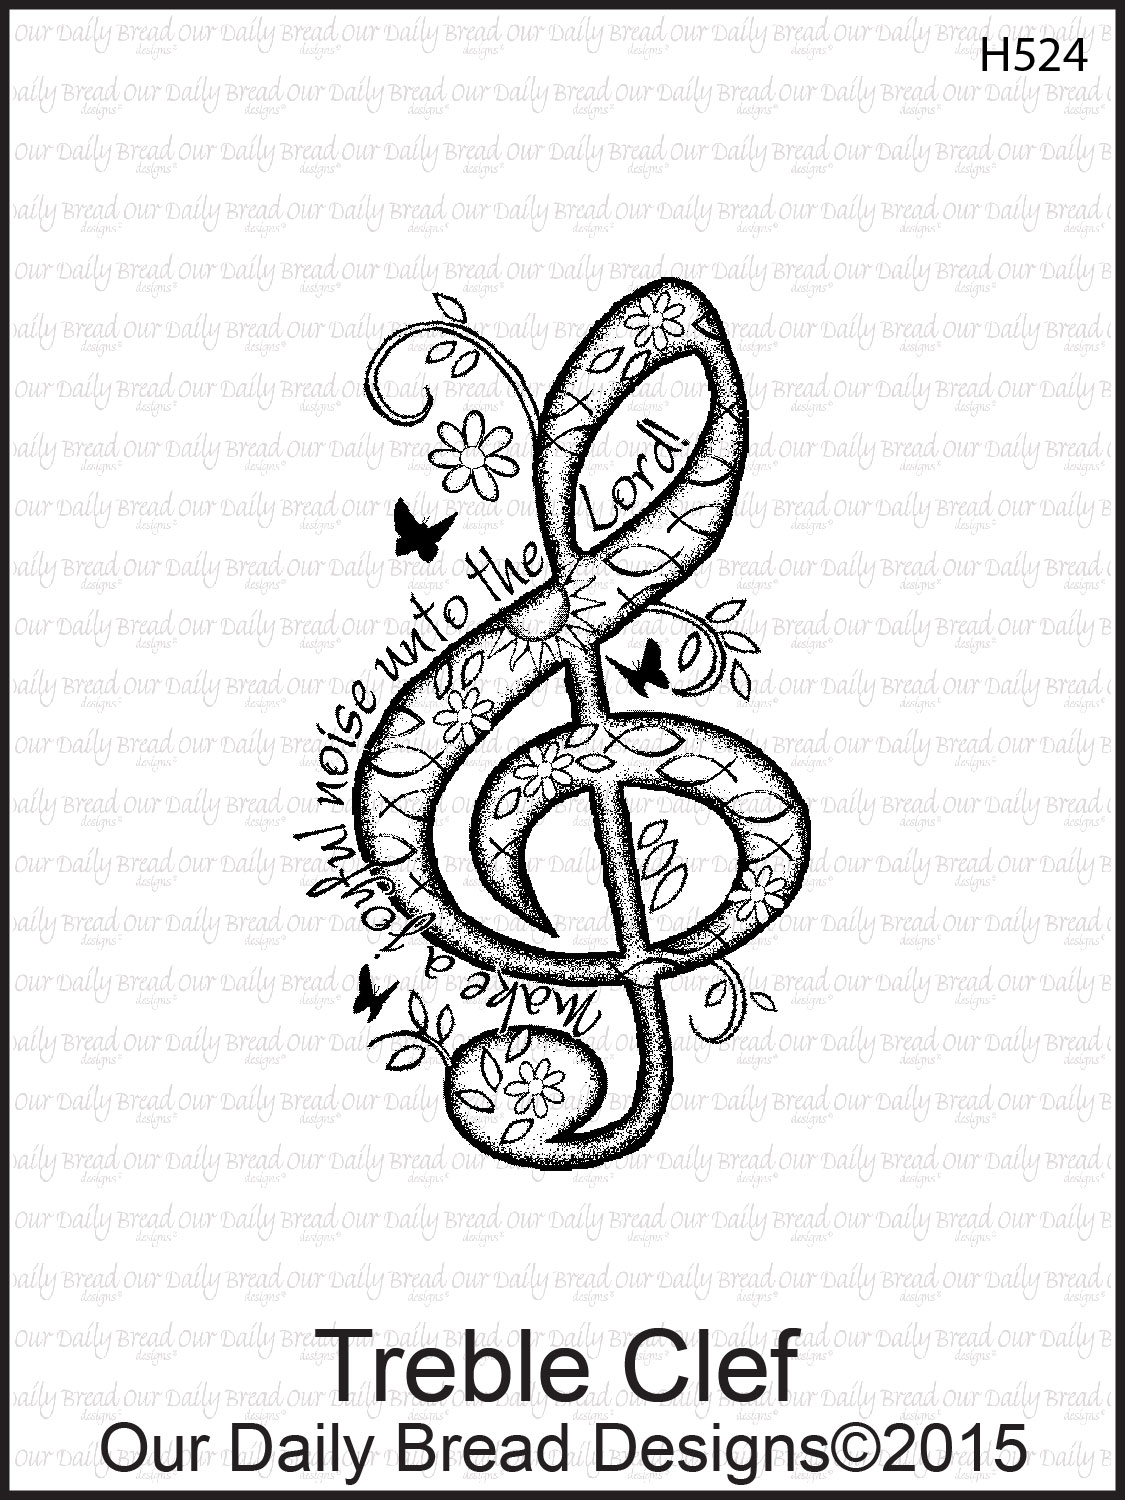 https://www.ourdailybreaddesigns.com/index.php/h524-treble-clef.html